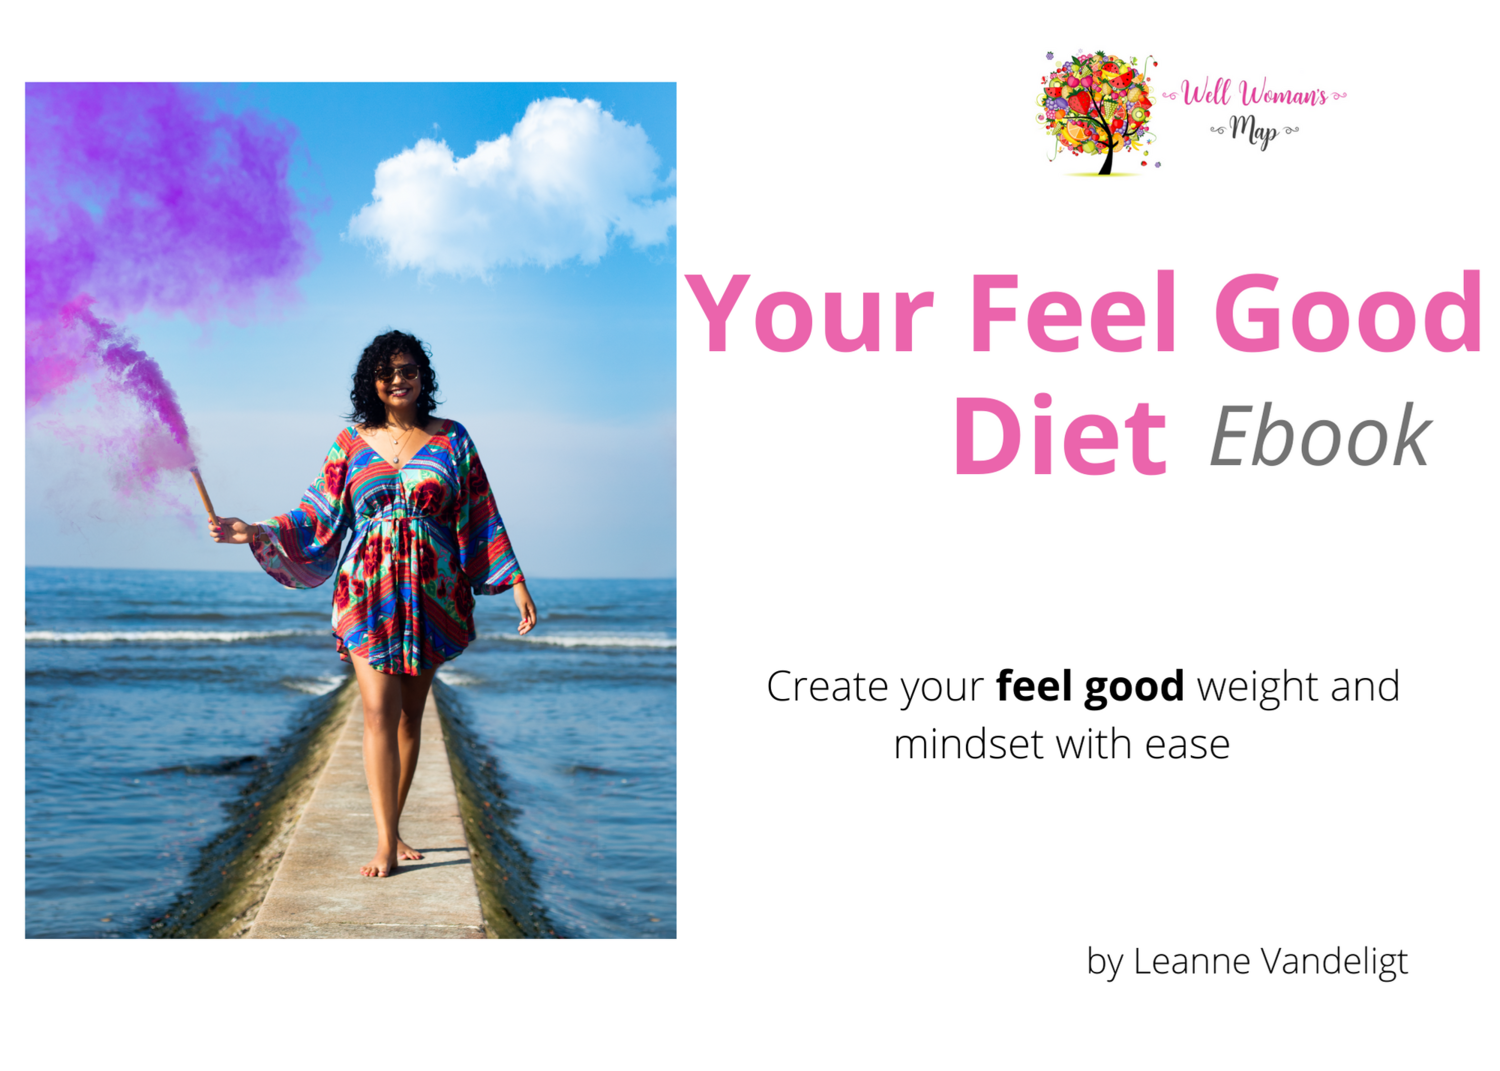 Your Feel Good Weight Ebook